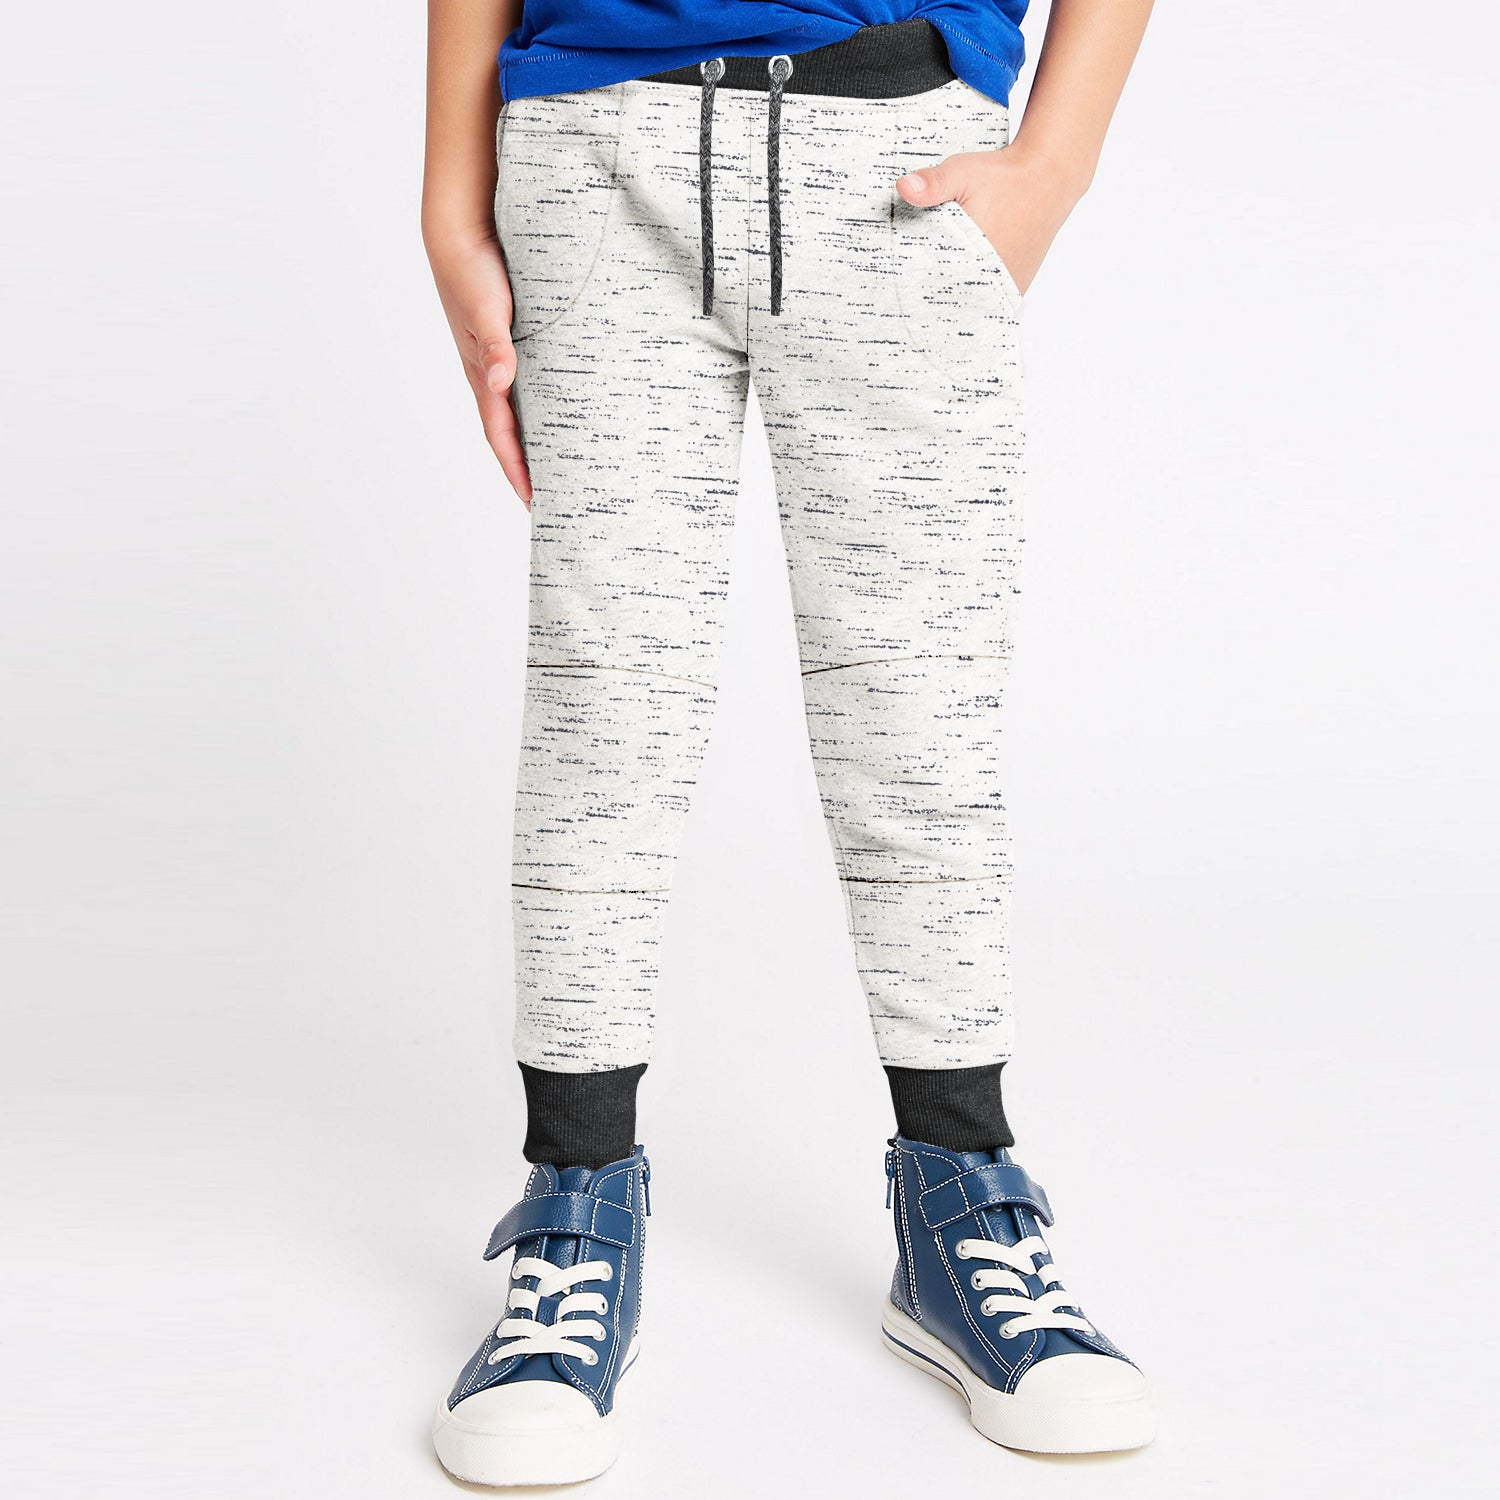 Next Fleece Jogger Trouser For Kids-Off White & Black Melange-BE10014